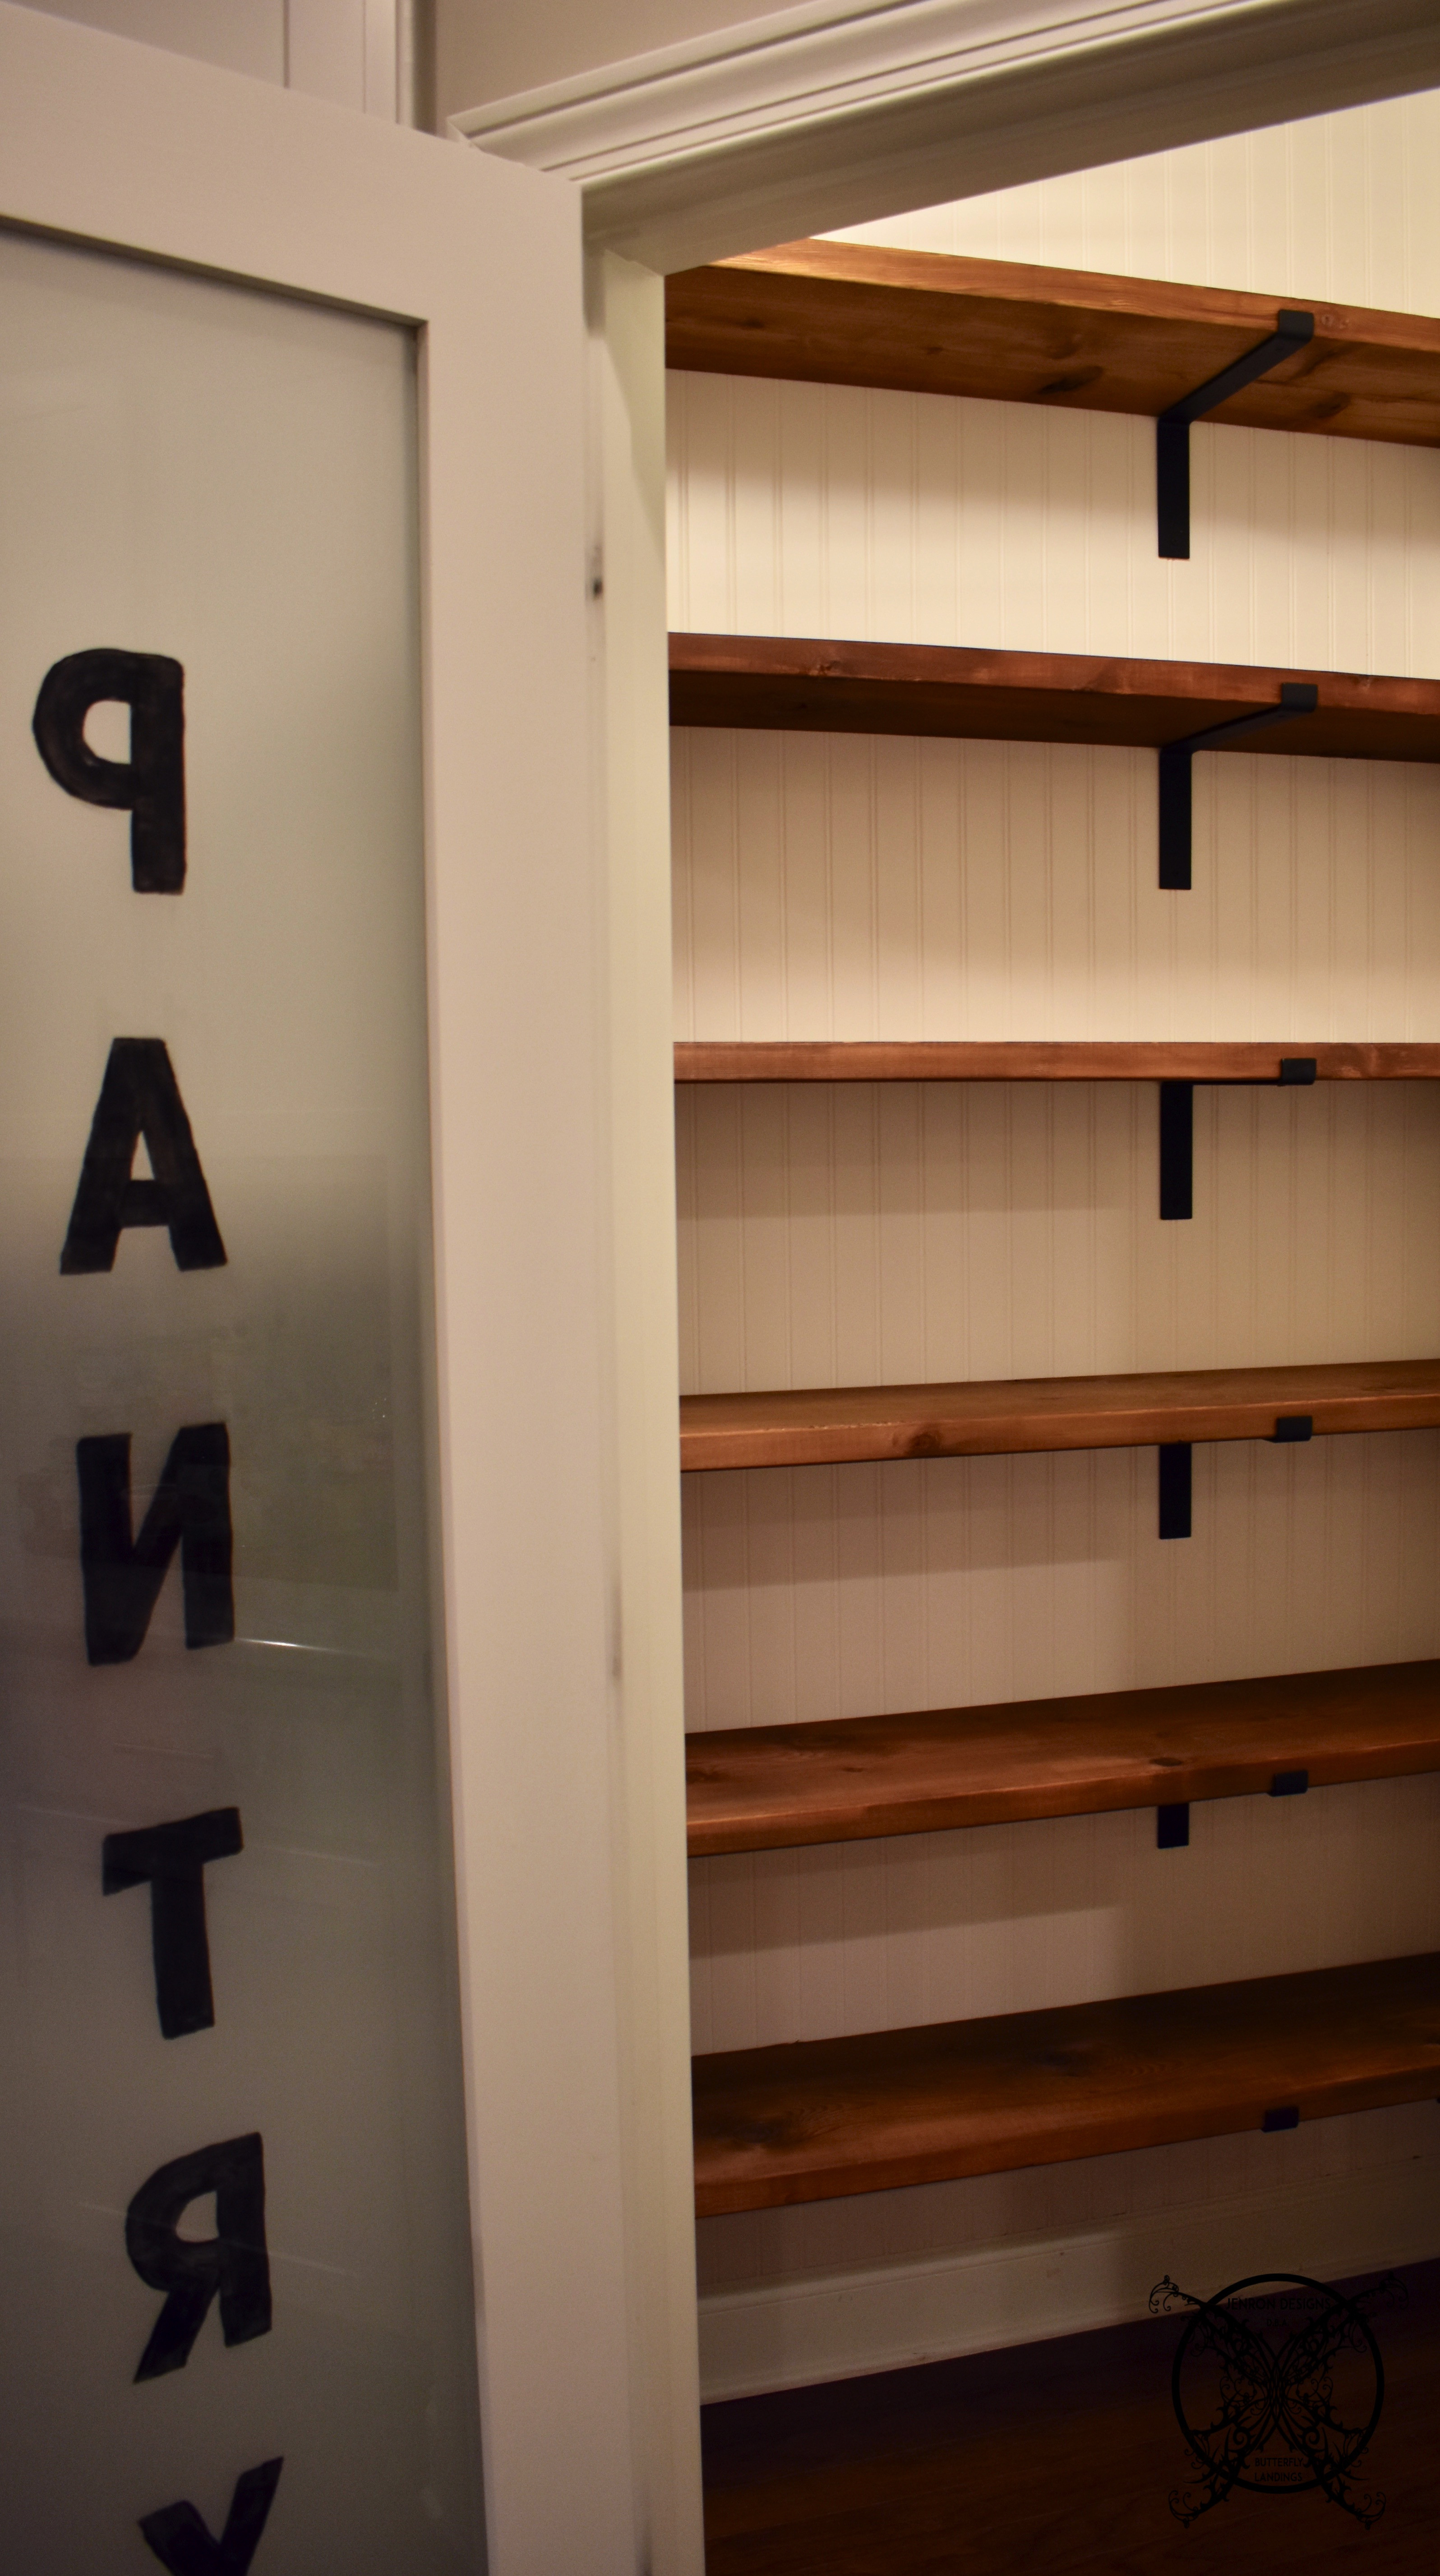 Best ideas about Pantry Shelves DIY . Save or Pin DIY Farmhouse Pantry Shelves Now.